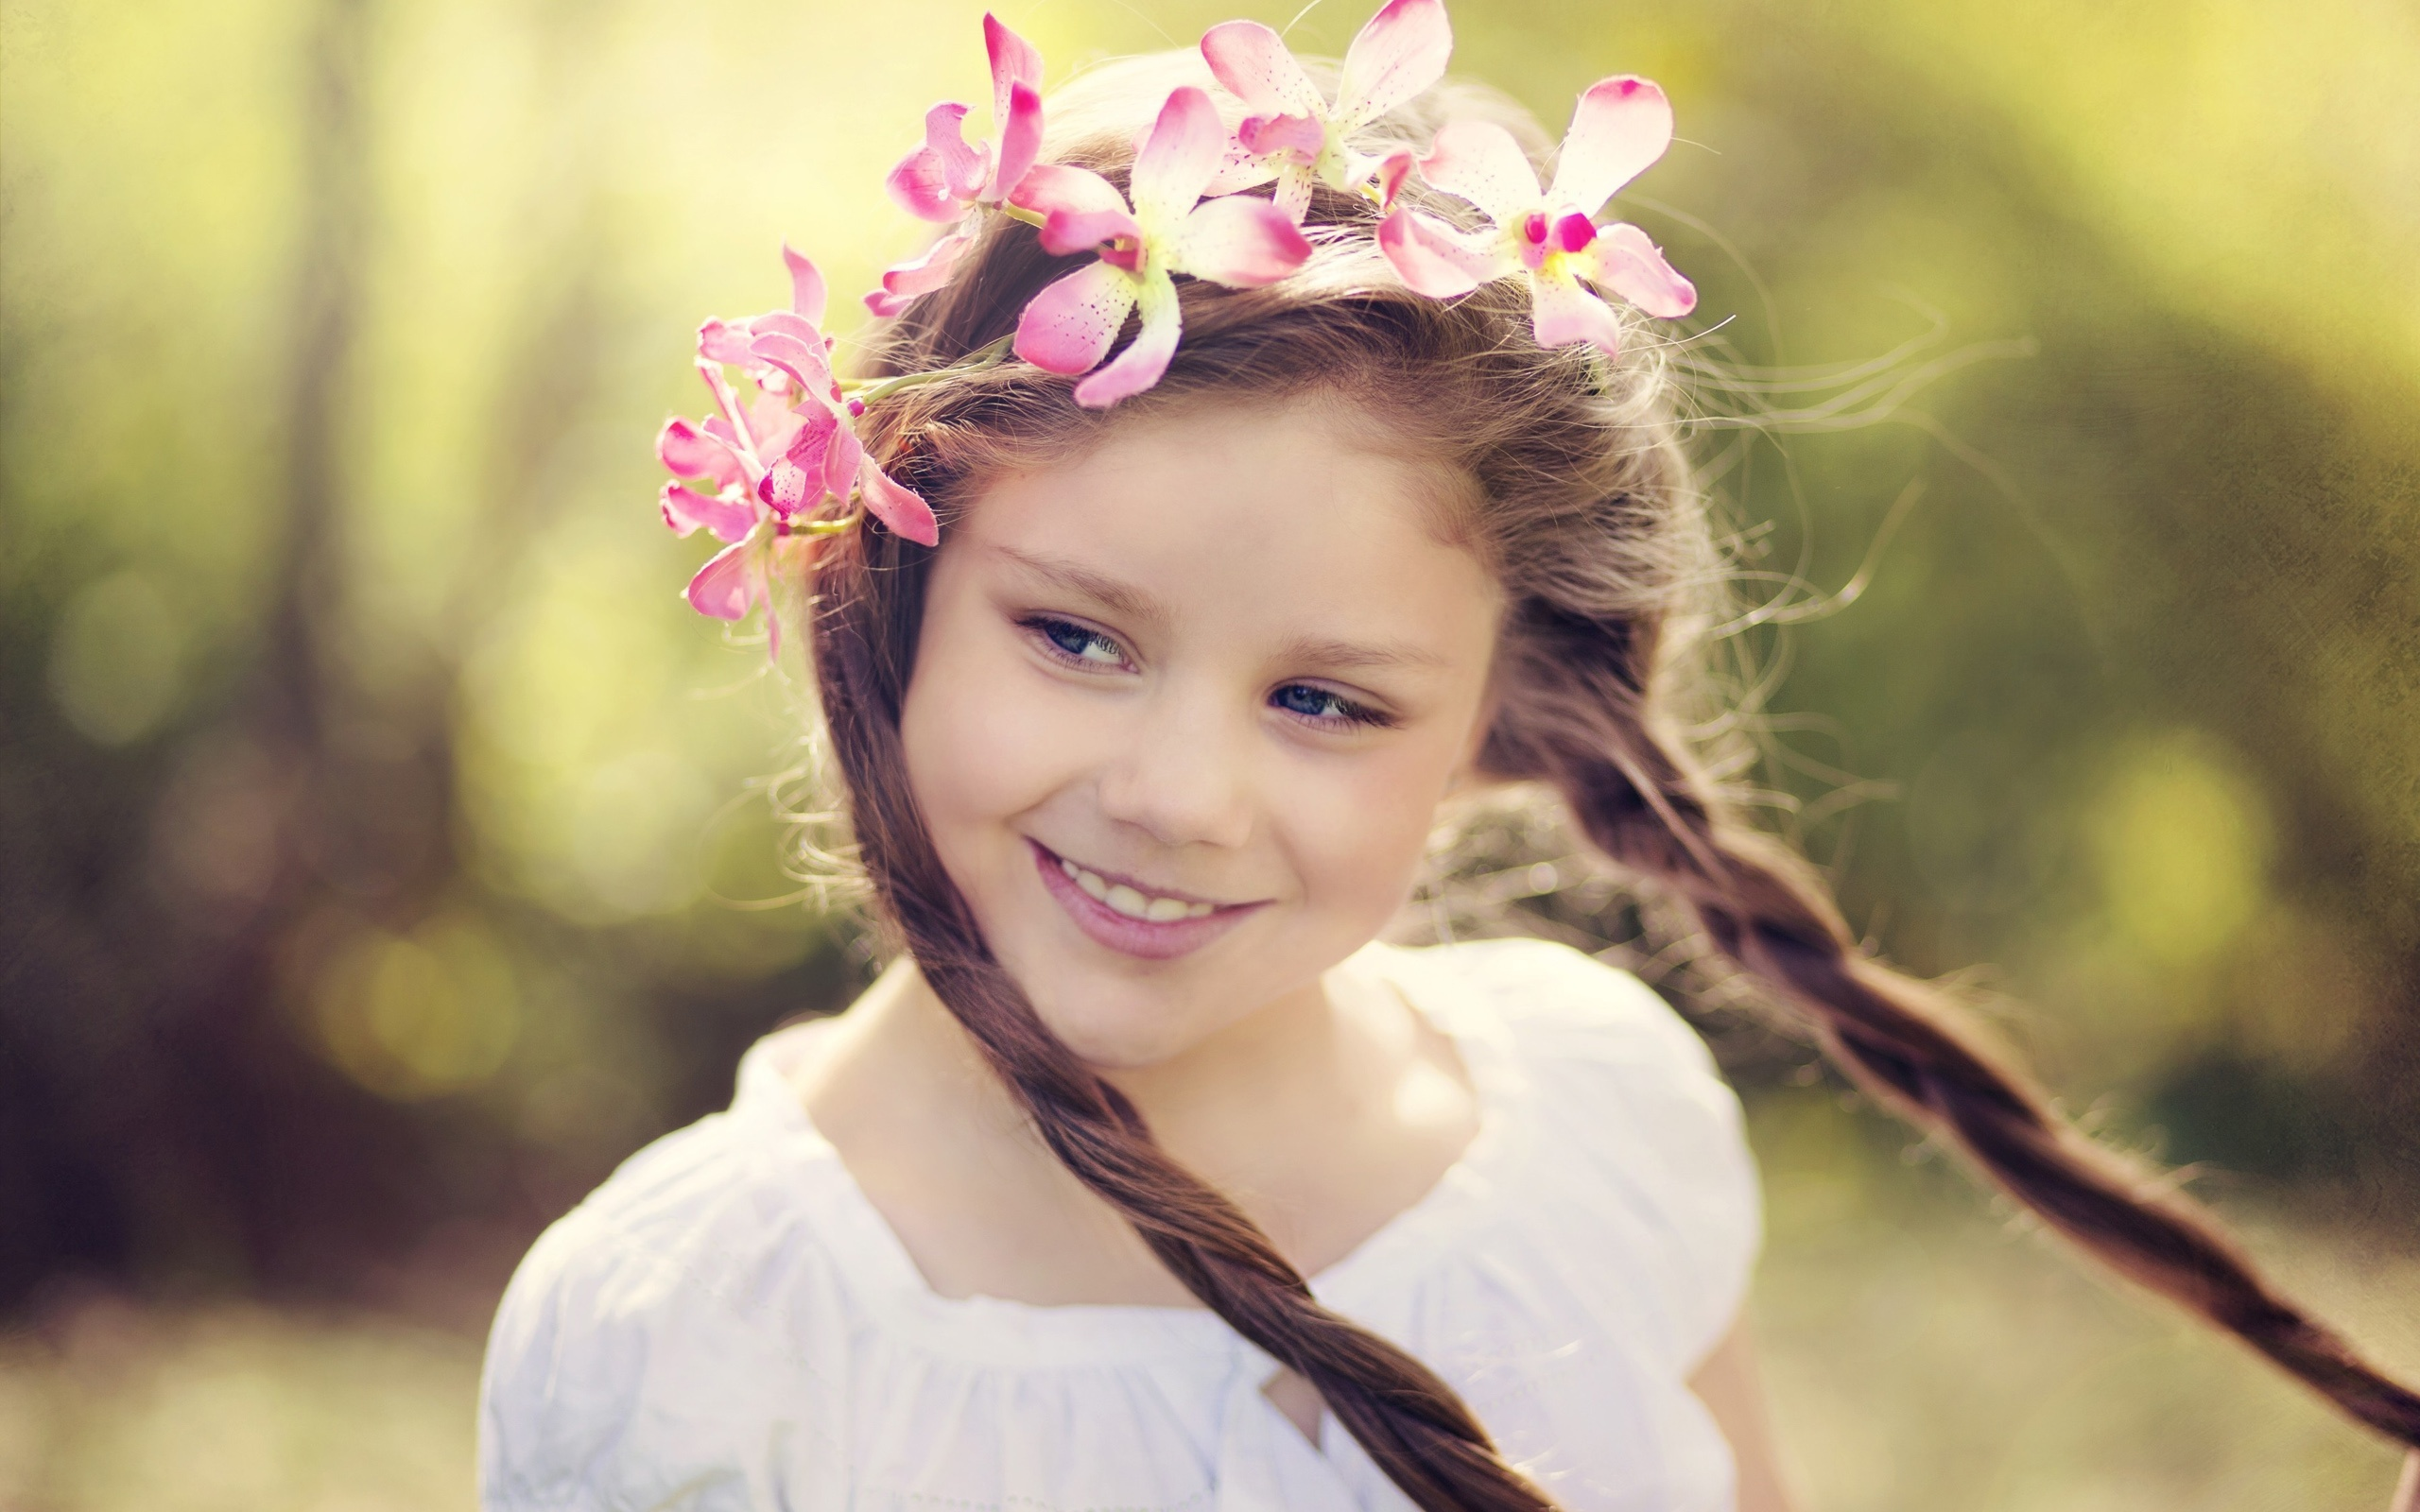 Little Girl Smile Wallpaper 4